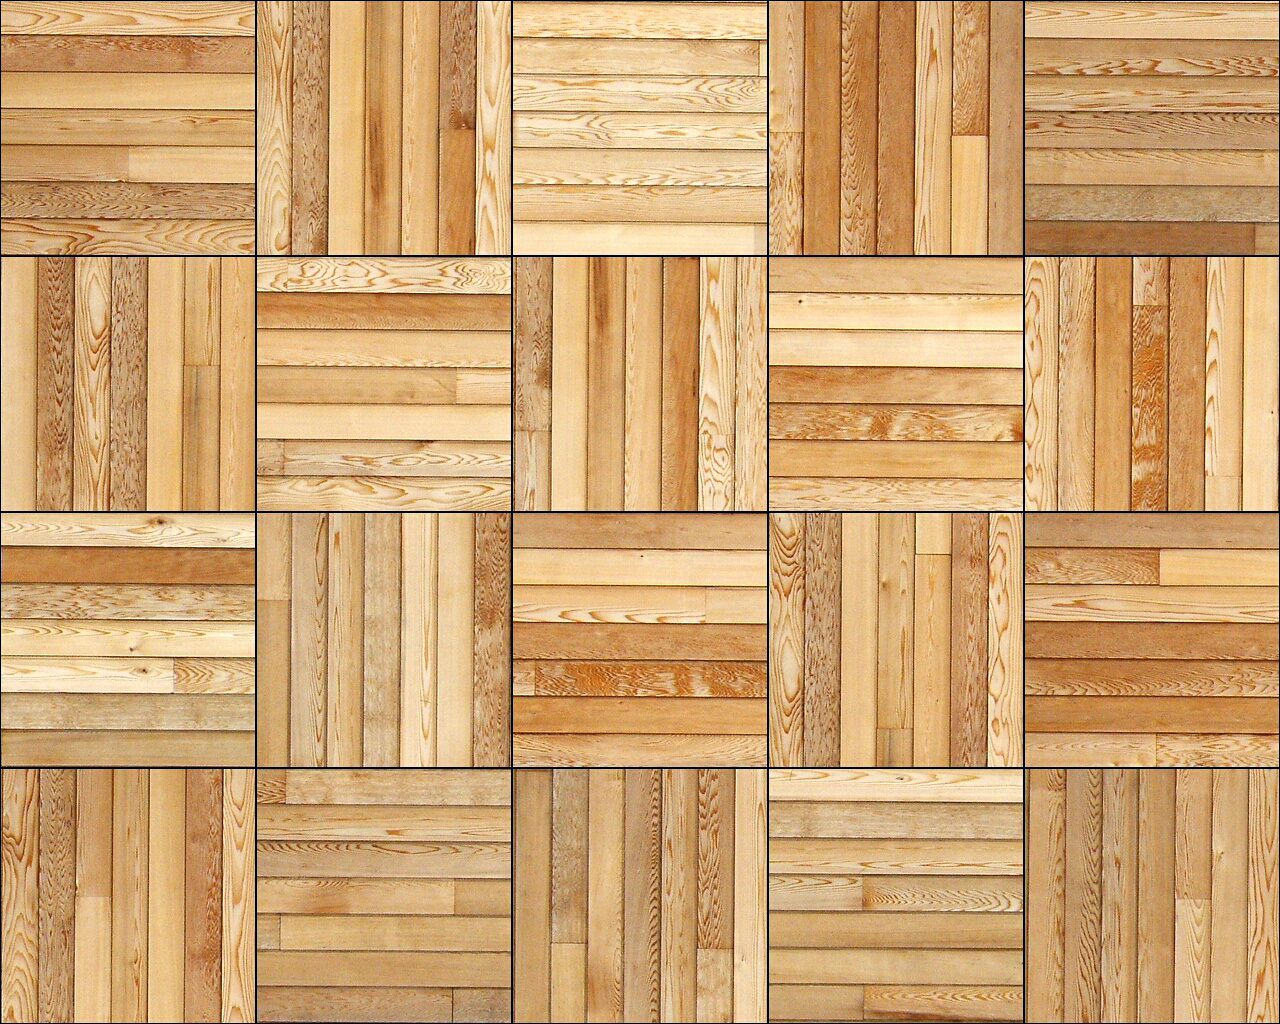 Parquet Wood Flooring ~ Foundation dezin decor floor tiles design